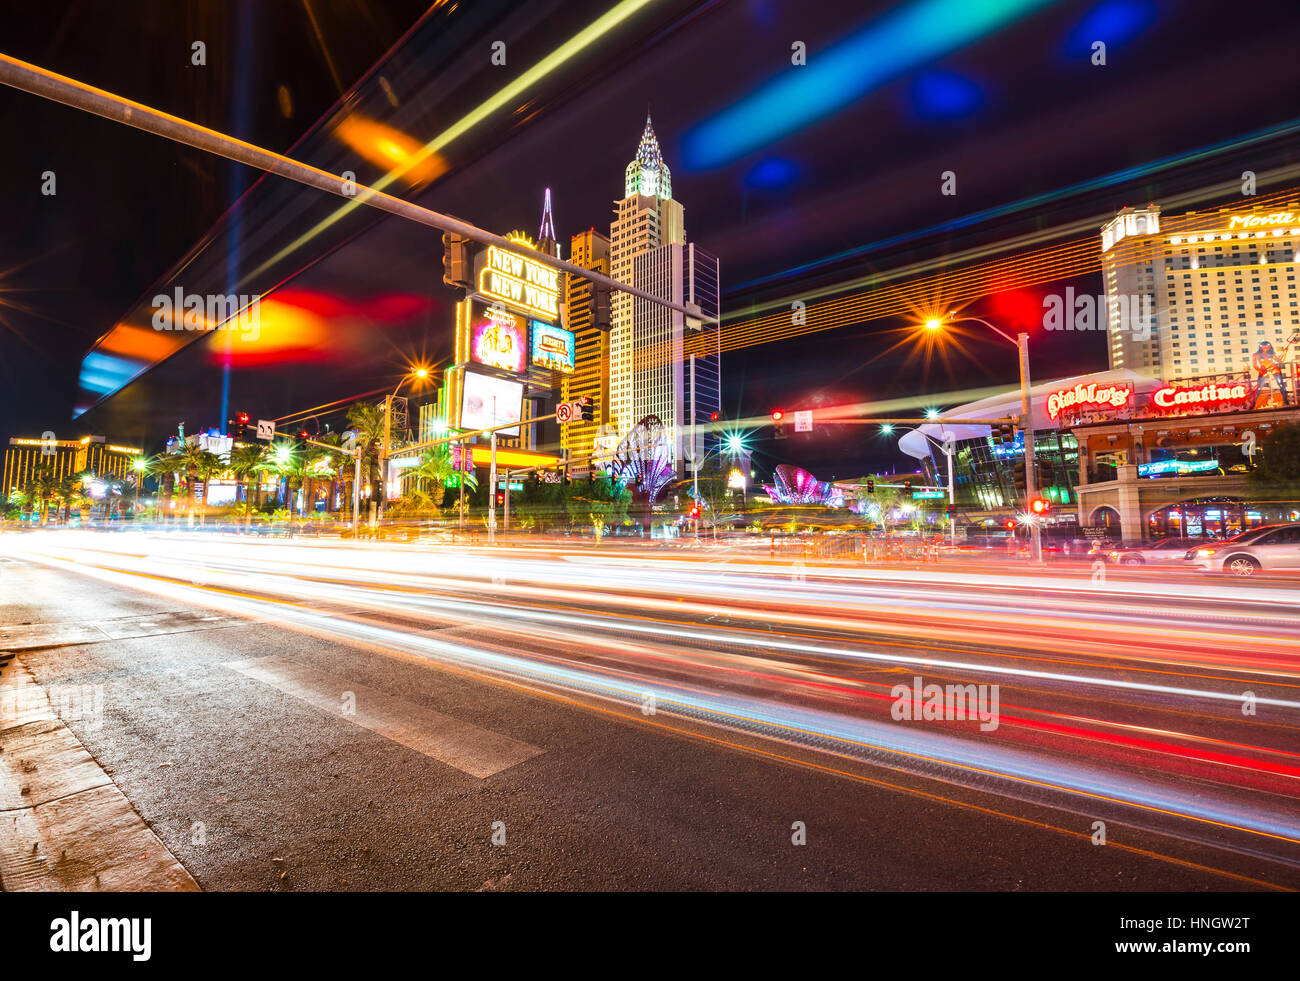 Las Vegas,Nevada,usa.07/28/16 : scenic view of Las Vegas cityscape at night with traffic lighting,las vegas,Nevada,usa. - Stock Image